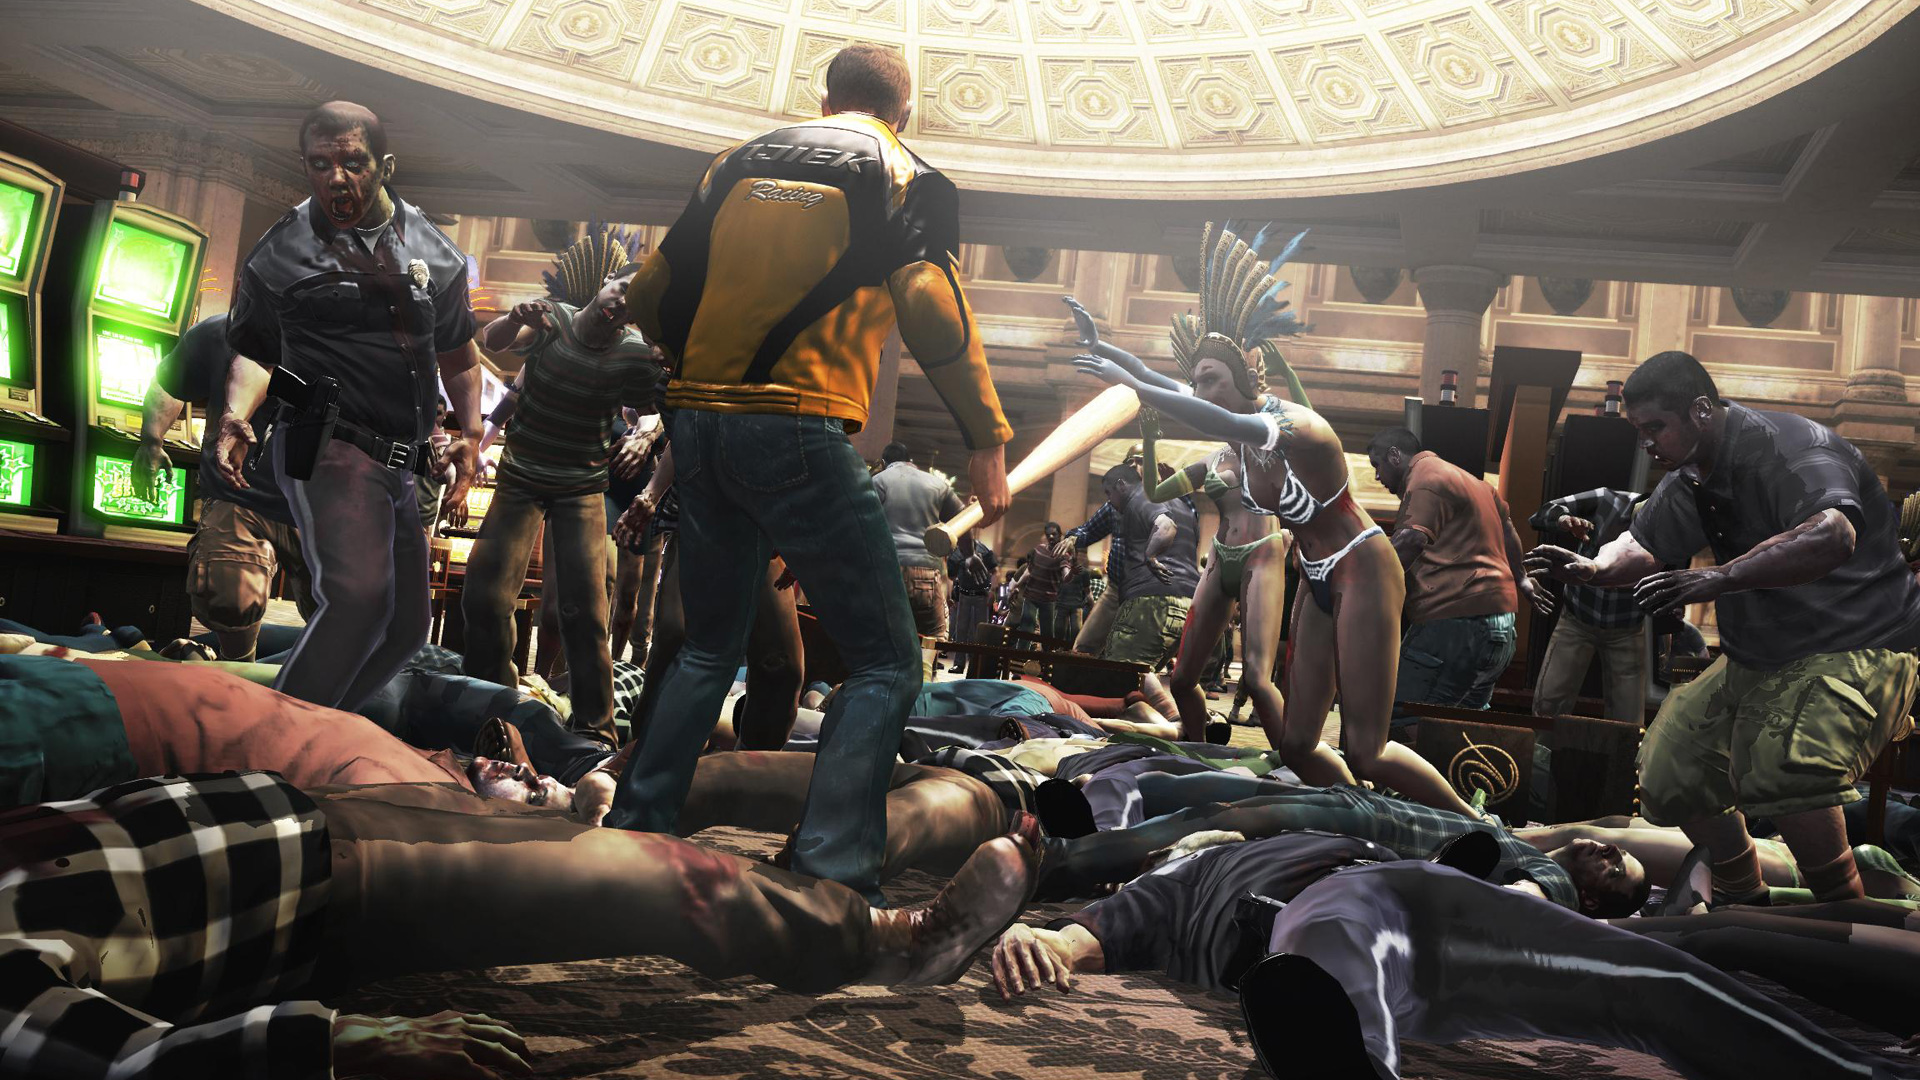 Dead Rising 2 Wallpaper in 1920x1080